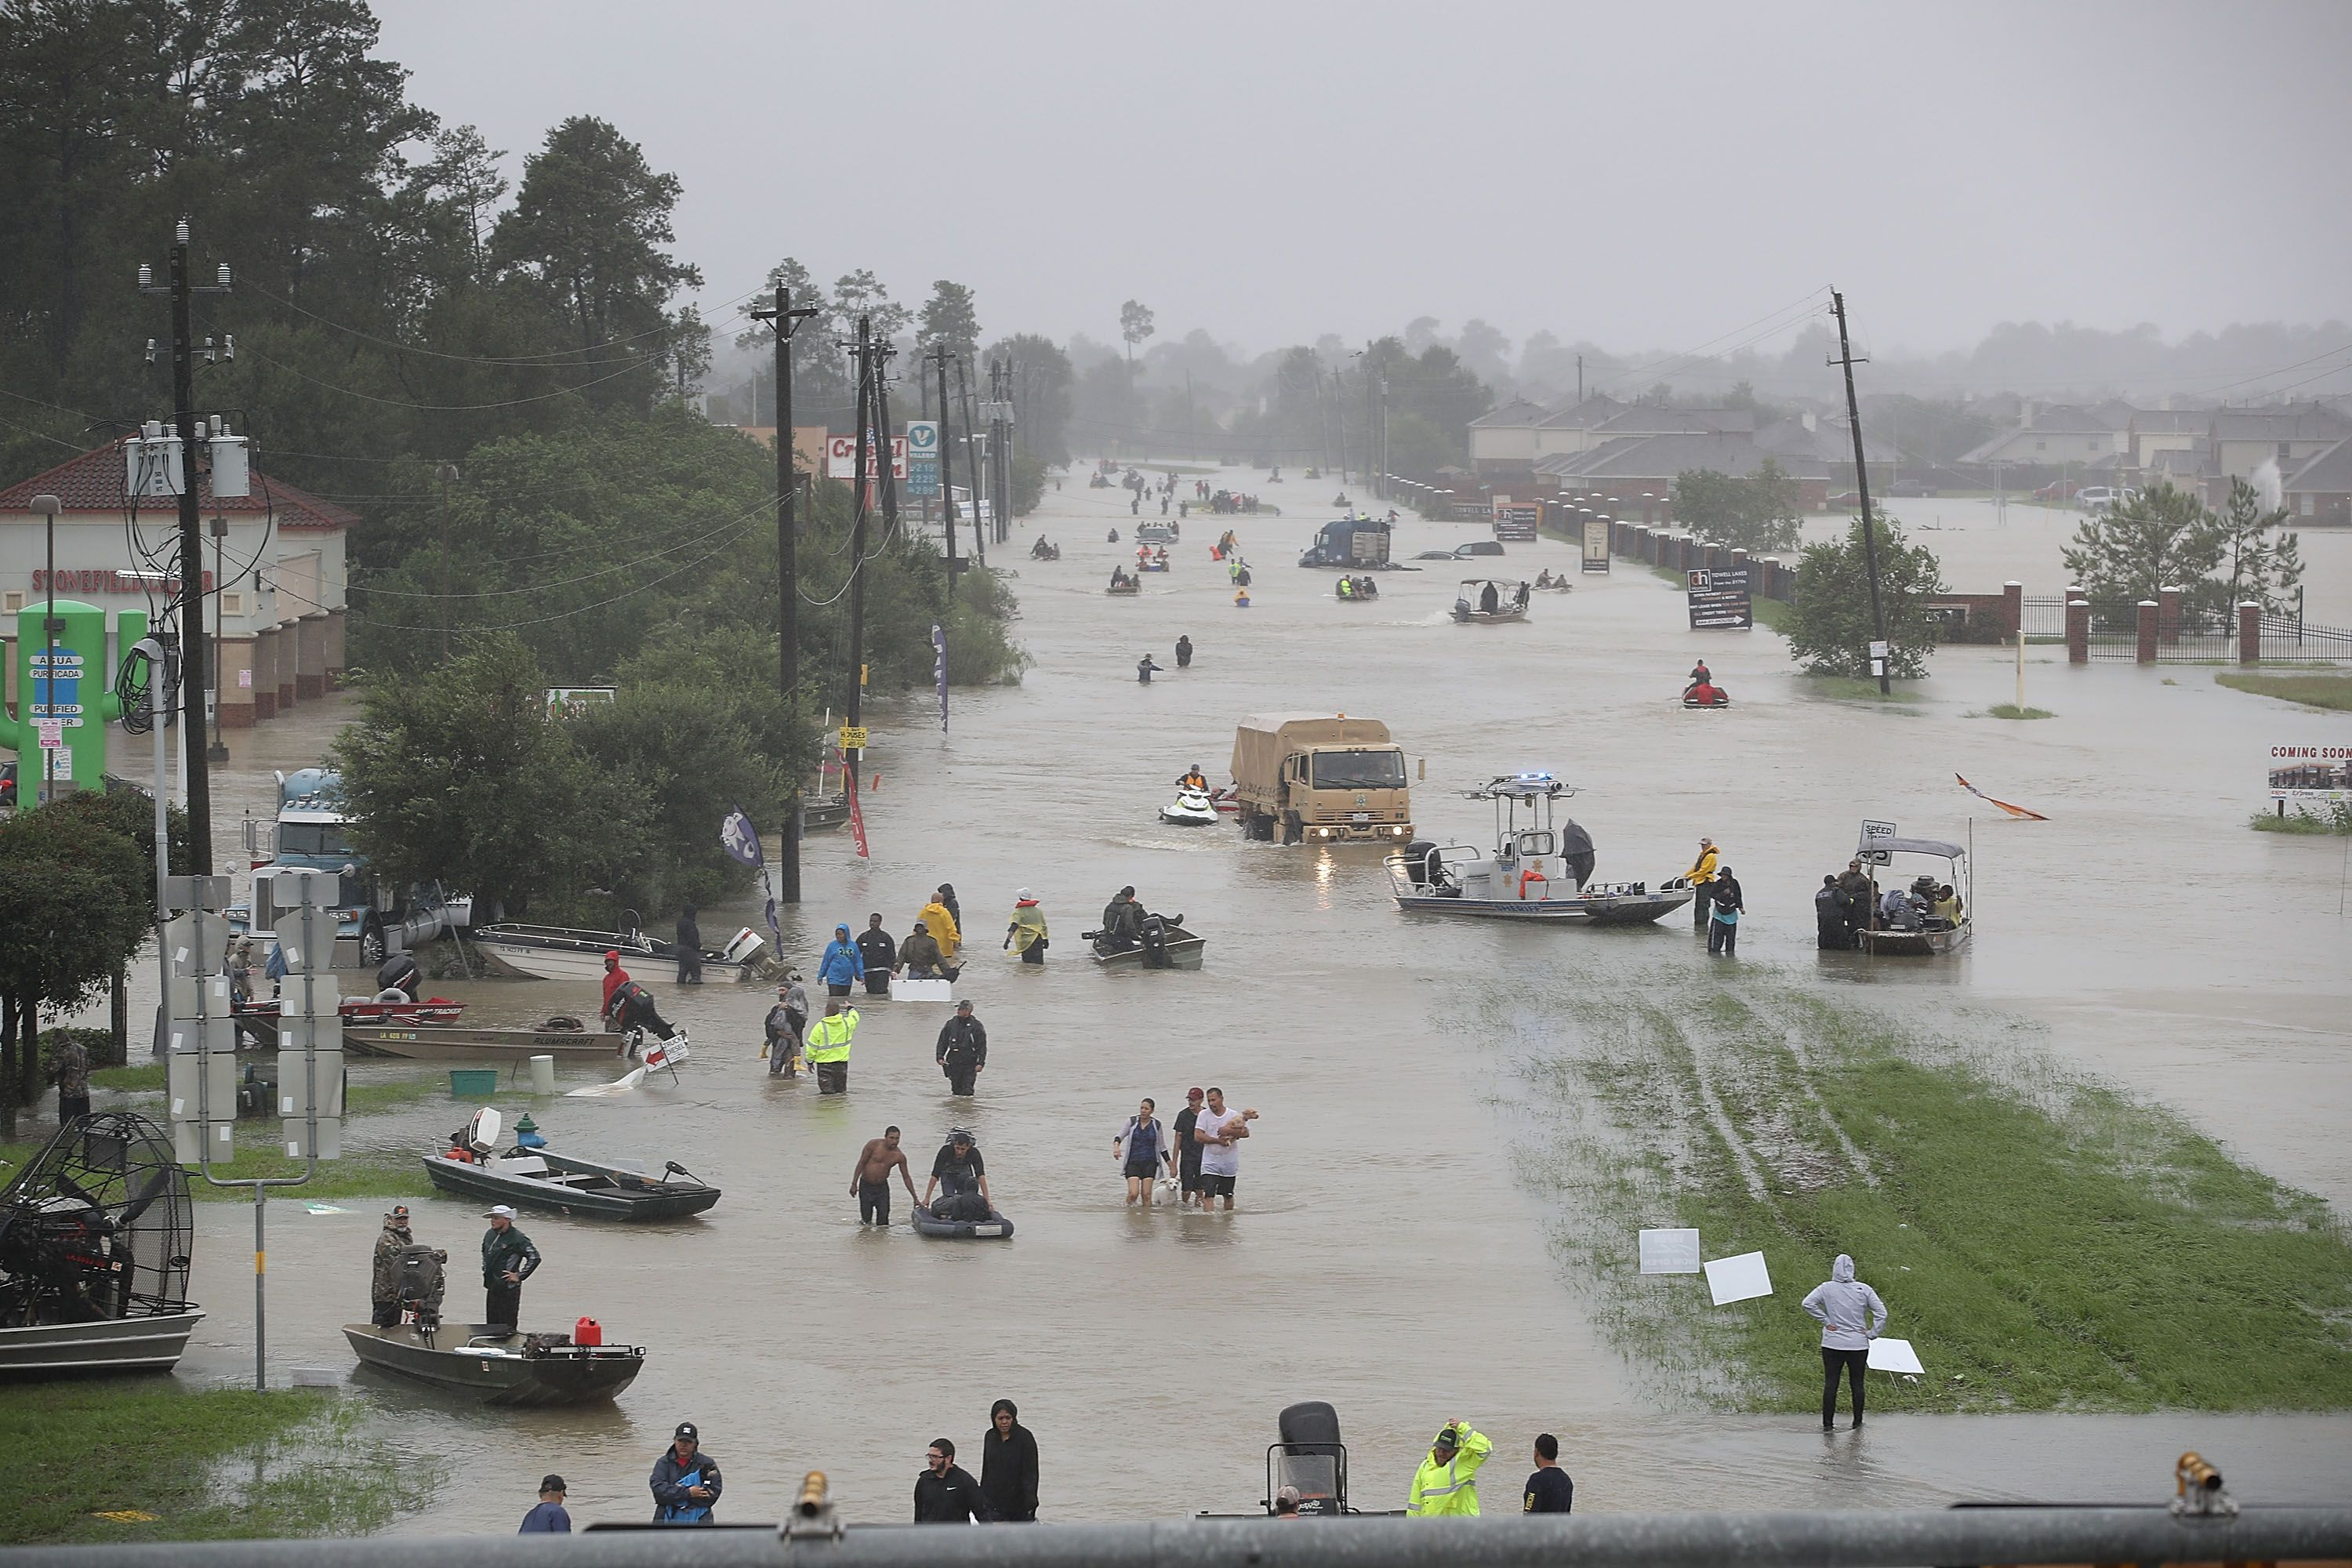 People walk down a flooded street as they evacuate their homes after the area was inundated with flooding from Hurricane Harvey on August 28, 2017 in Houston, Texas.